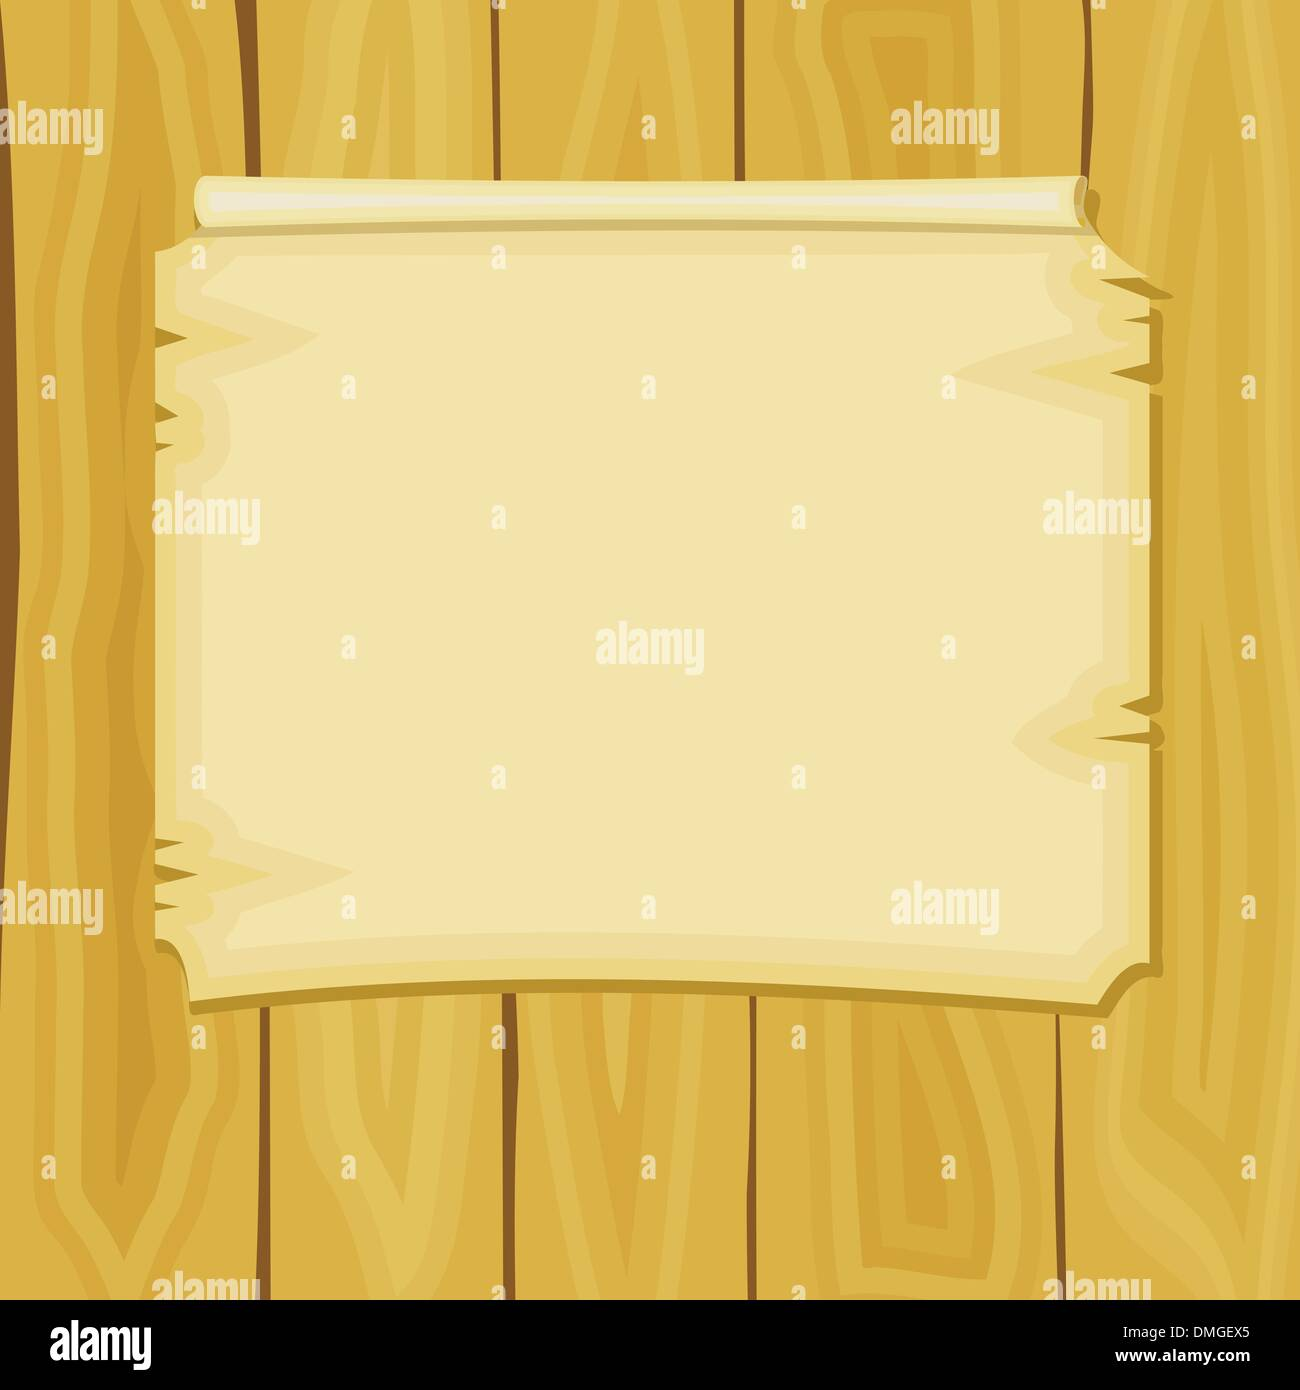 Vector illustration of cartoon announcement on wooden boards Stock Vector